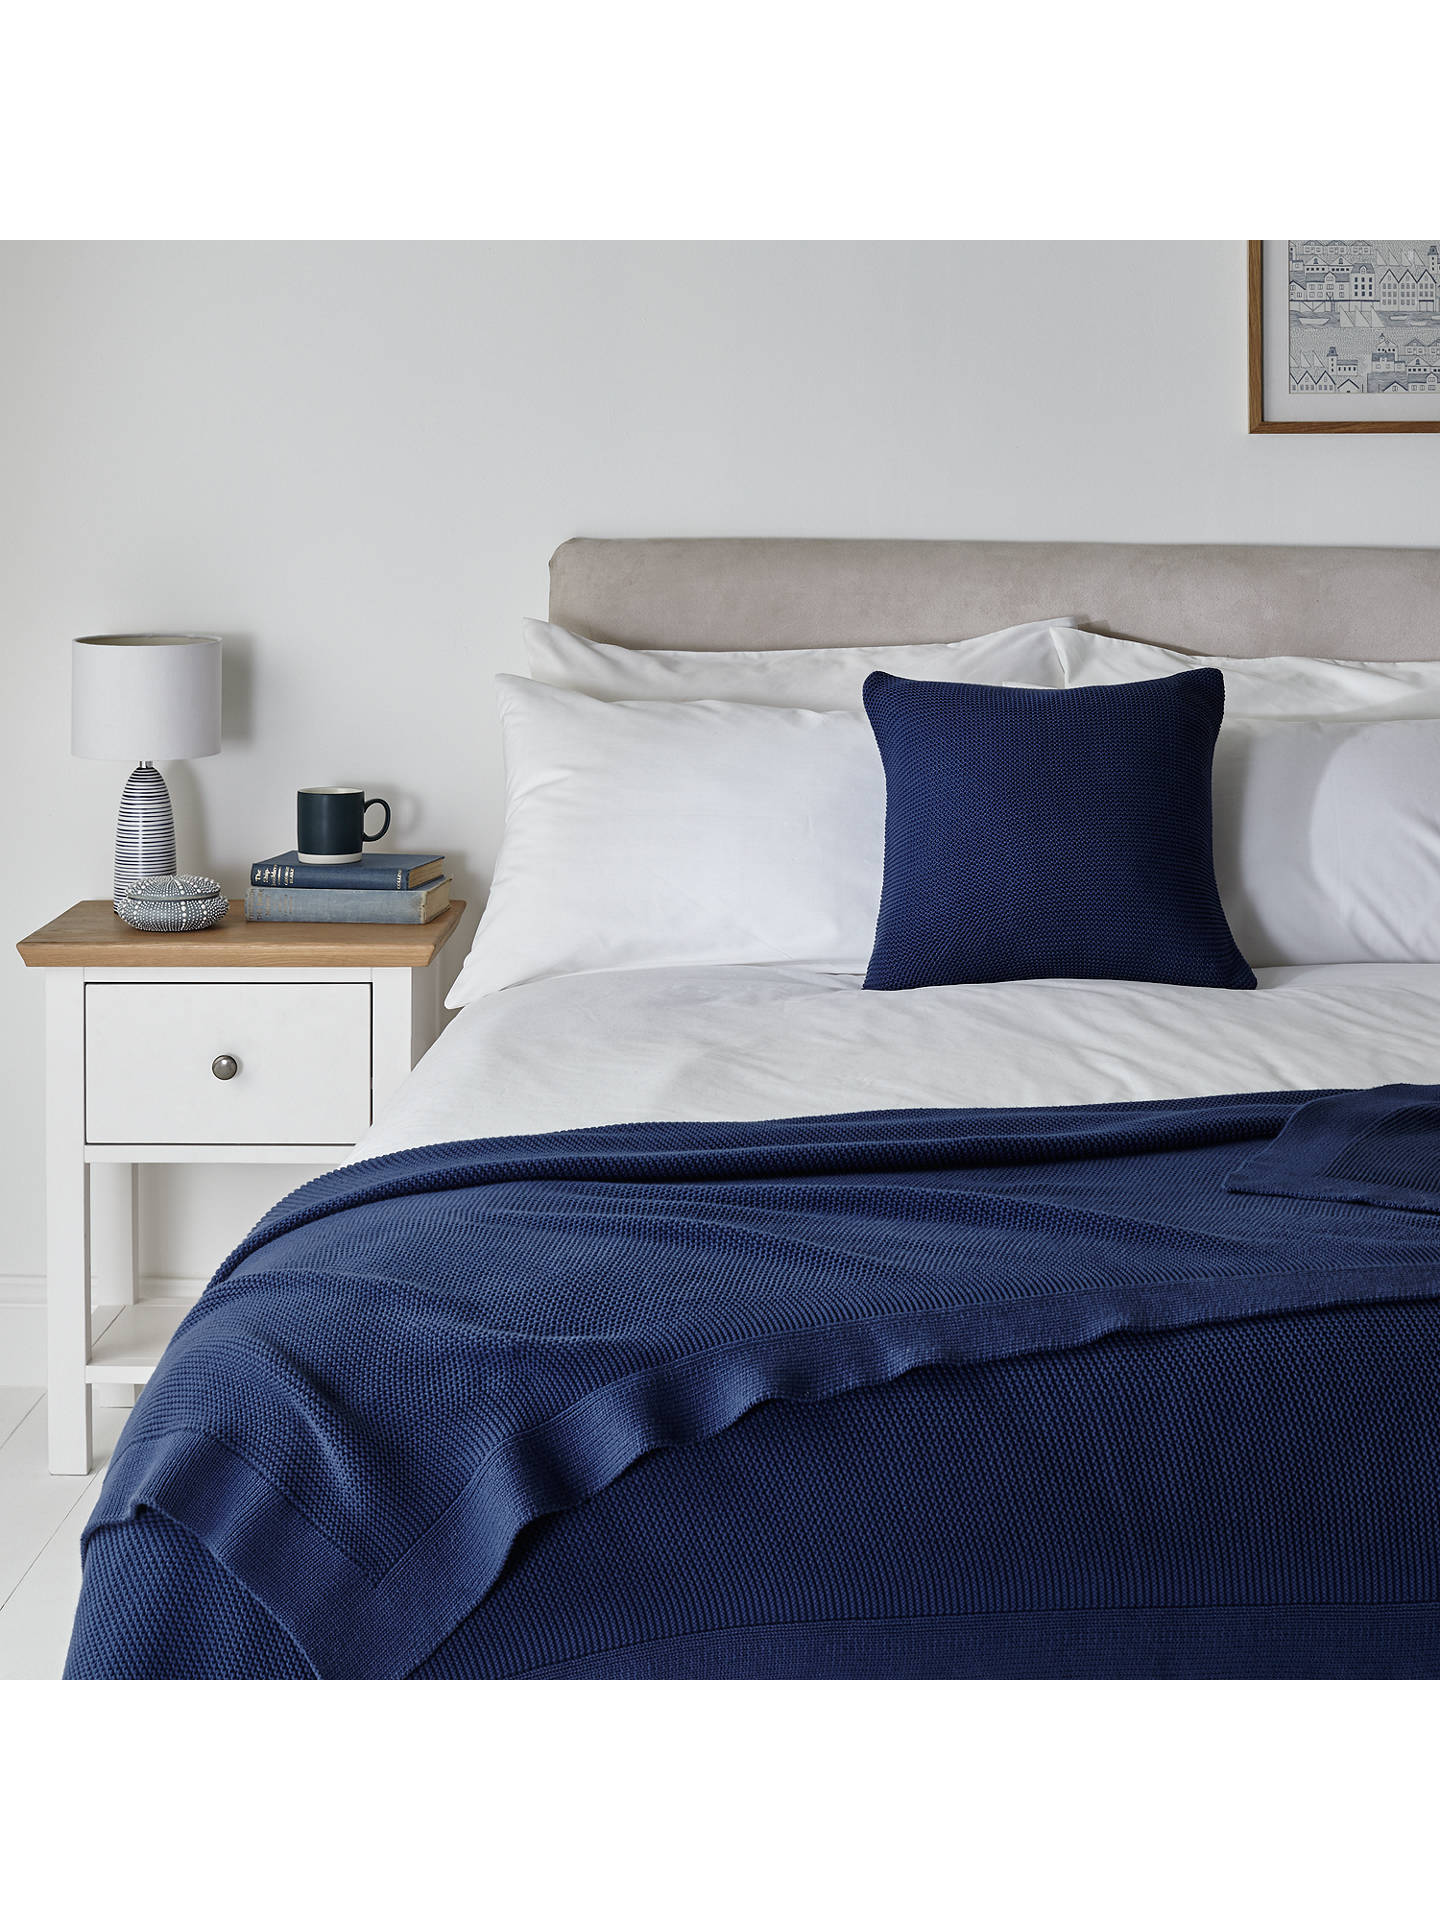 BuyJohn Lewis & Partners Rye Plain Knit Throw, L200 x W150cm, Dark Blue Online at johnlewis.com